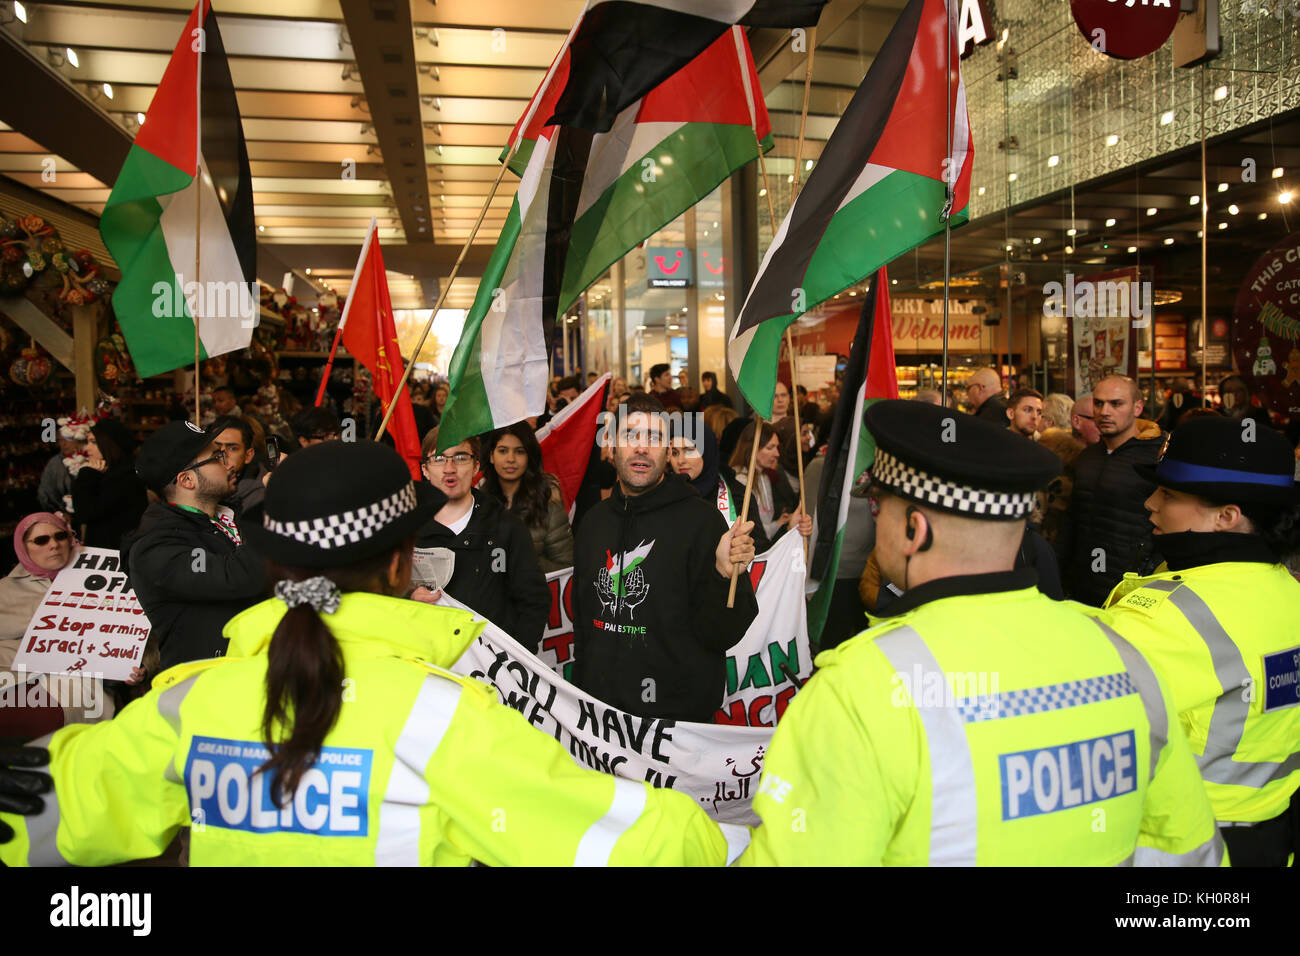 Manchester, UK. 11th Nov, 2017. Police form a line to prevent Pro Palestinian activists from marching near Marks - Stock Image